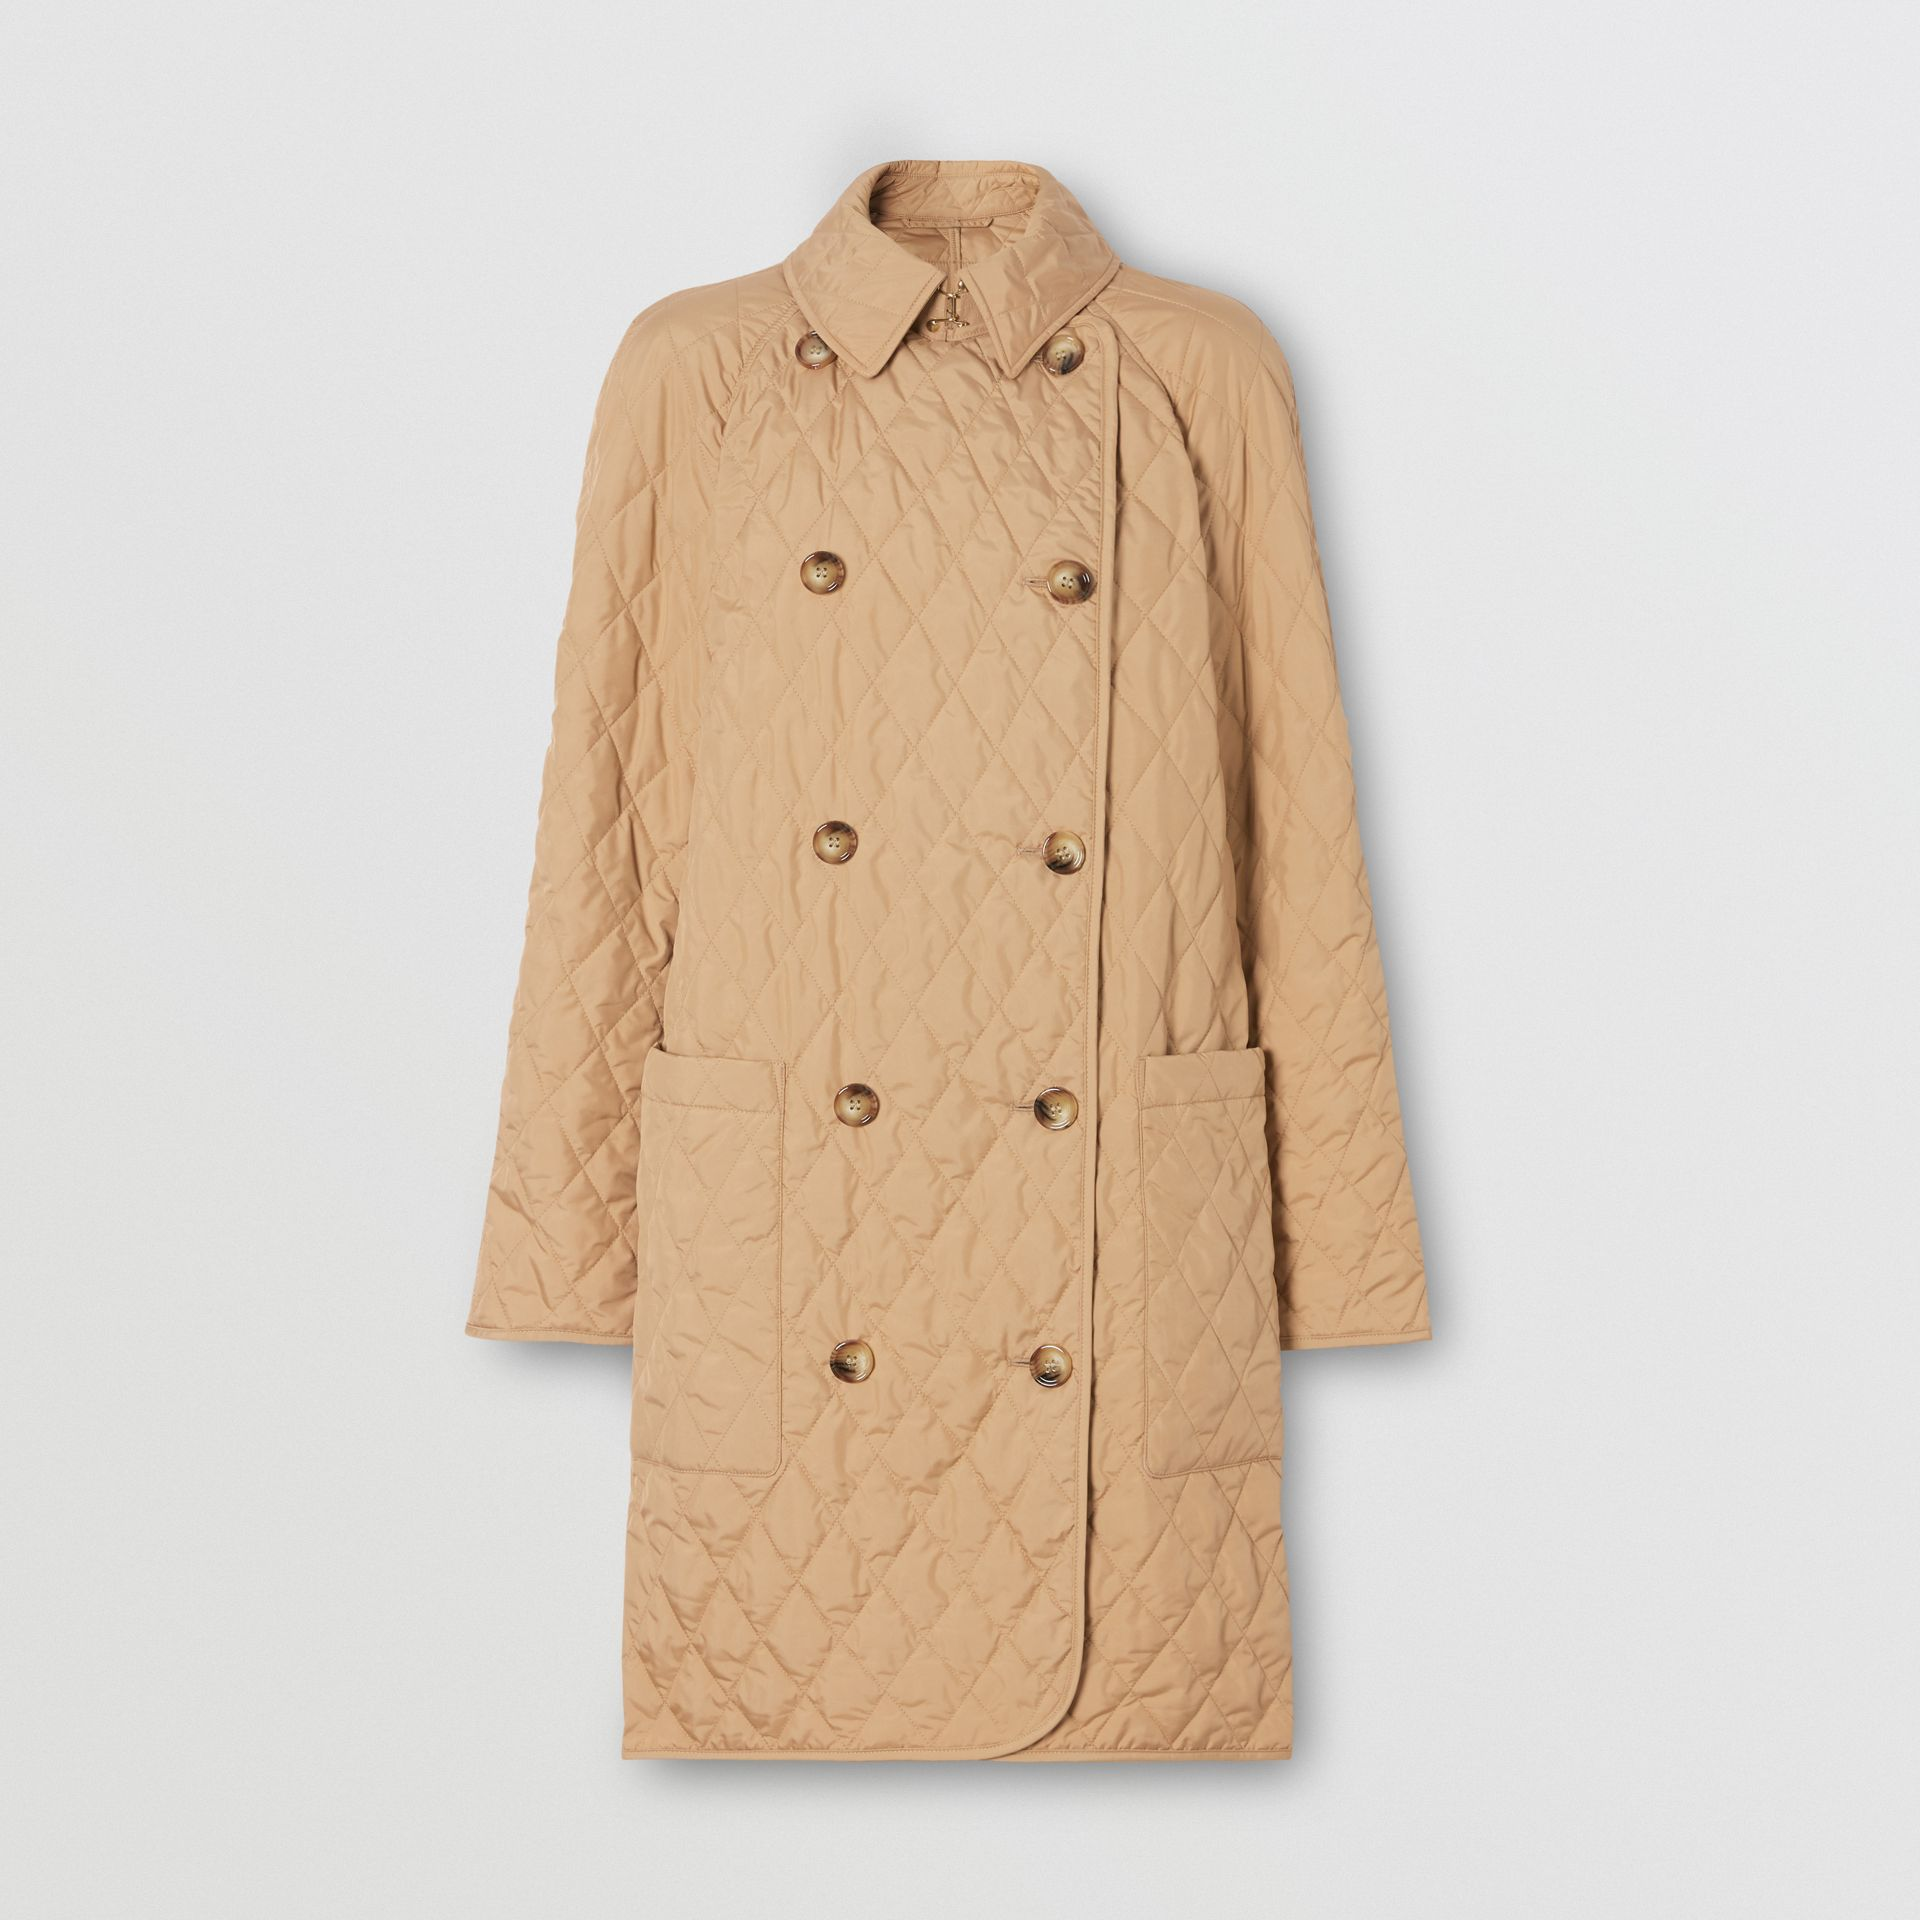 Diamond Quilted Double-breasted Coat in Biscuit - Women | Burberry - gallery image 3